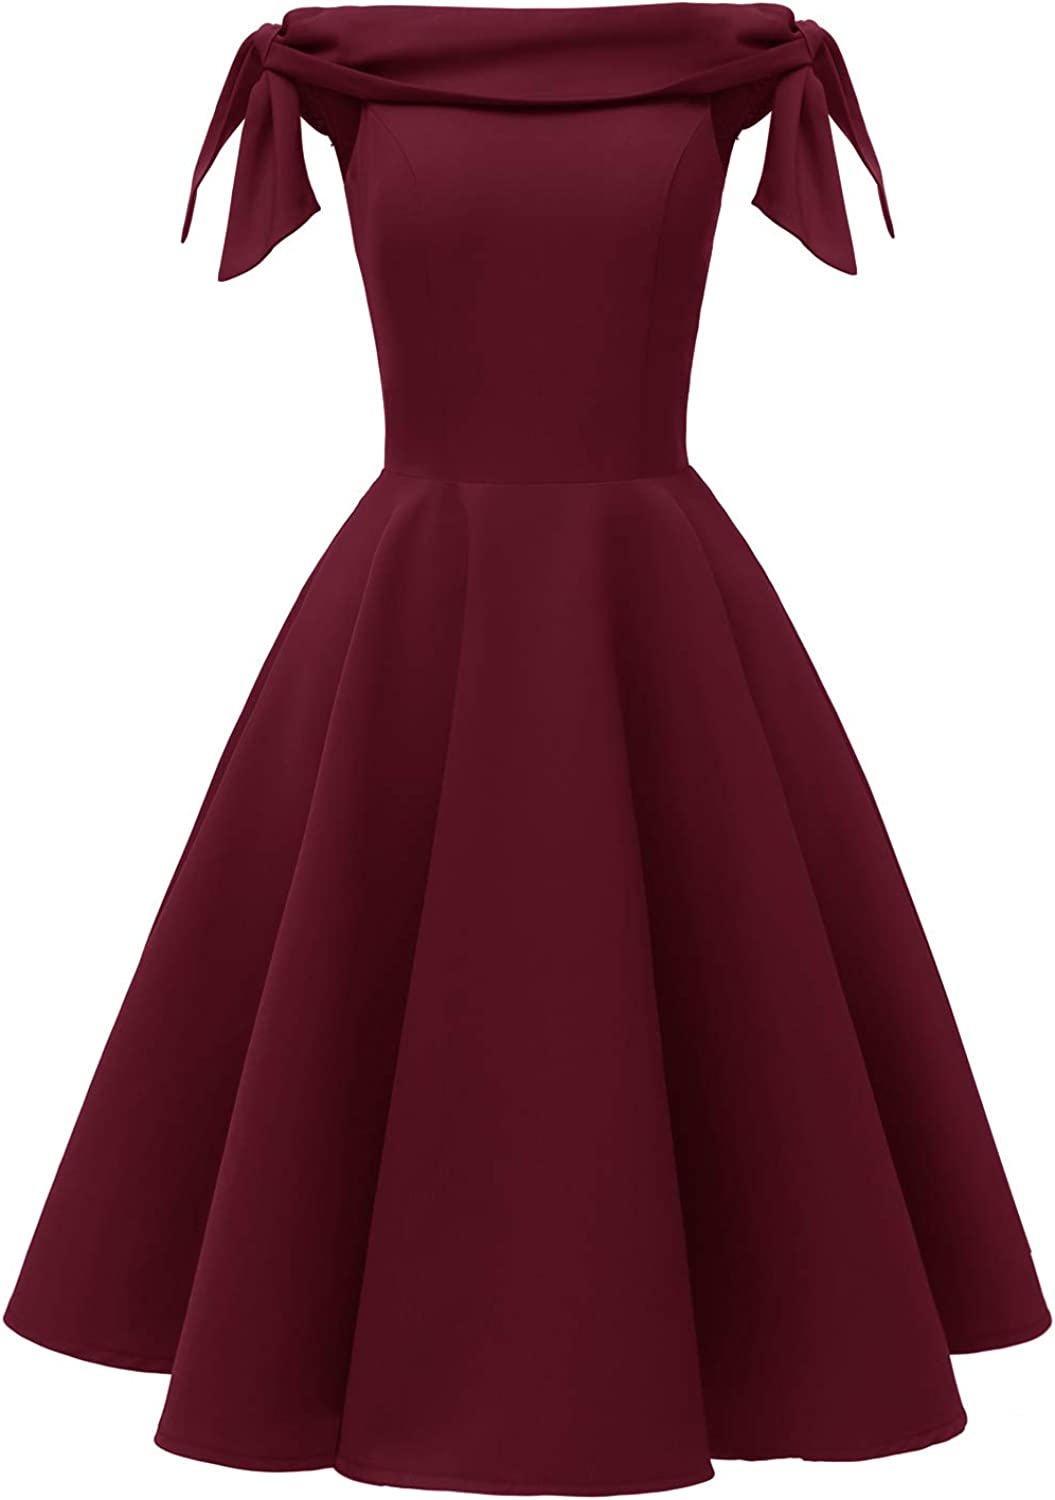 Women's Off The Shoulder Vintage 1950s Bowknot Sleeve Cocktail Party Swing Dress Retro Rockabilly Evening Wedding Prom Dress